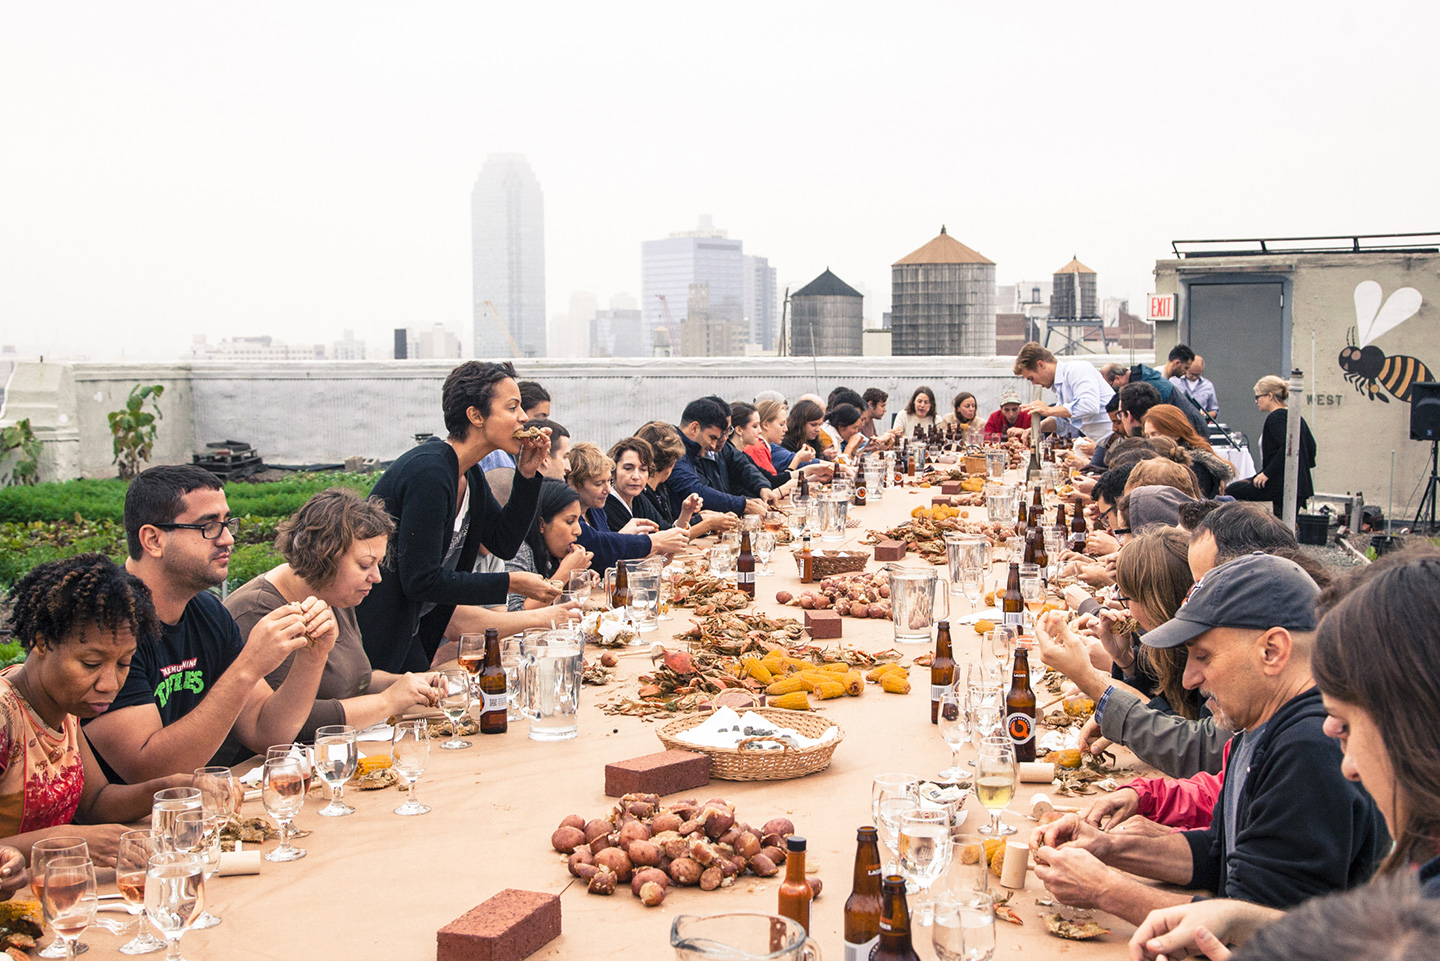 Dine in Brooklyn Celebrates the Boroughs Rich Cuisine